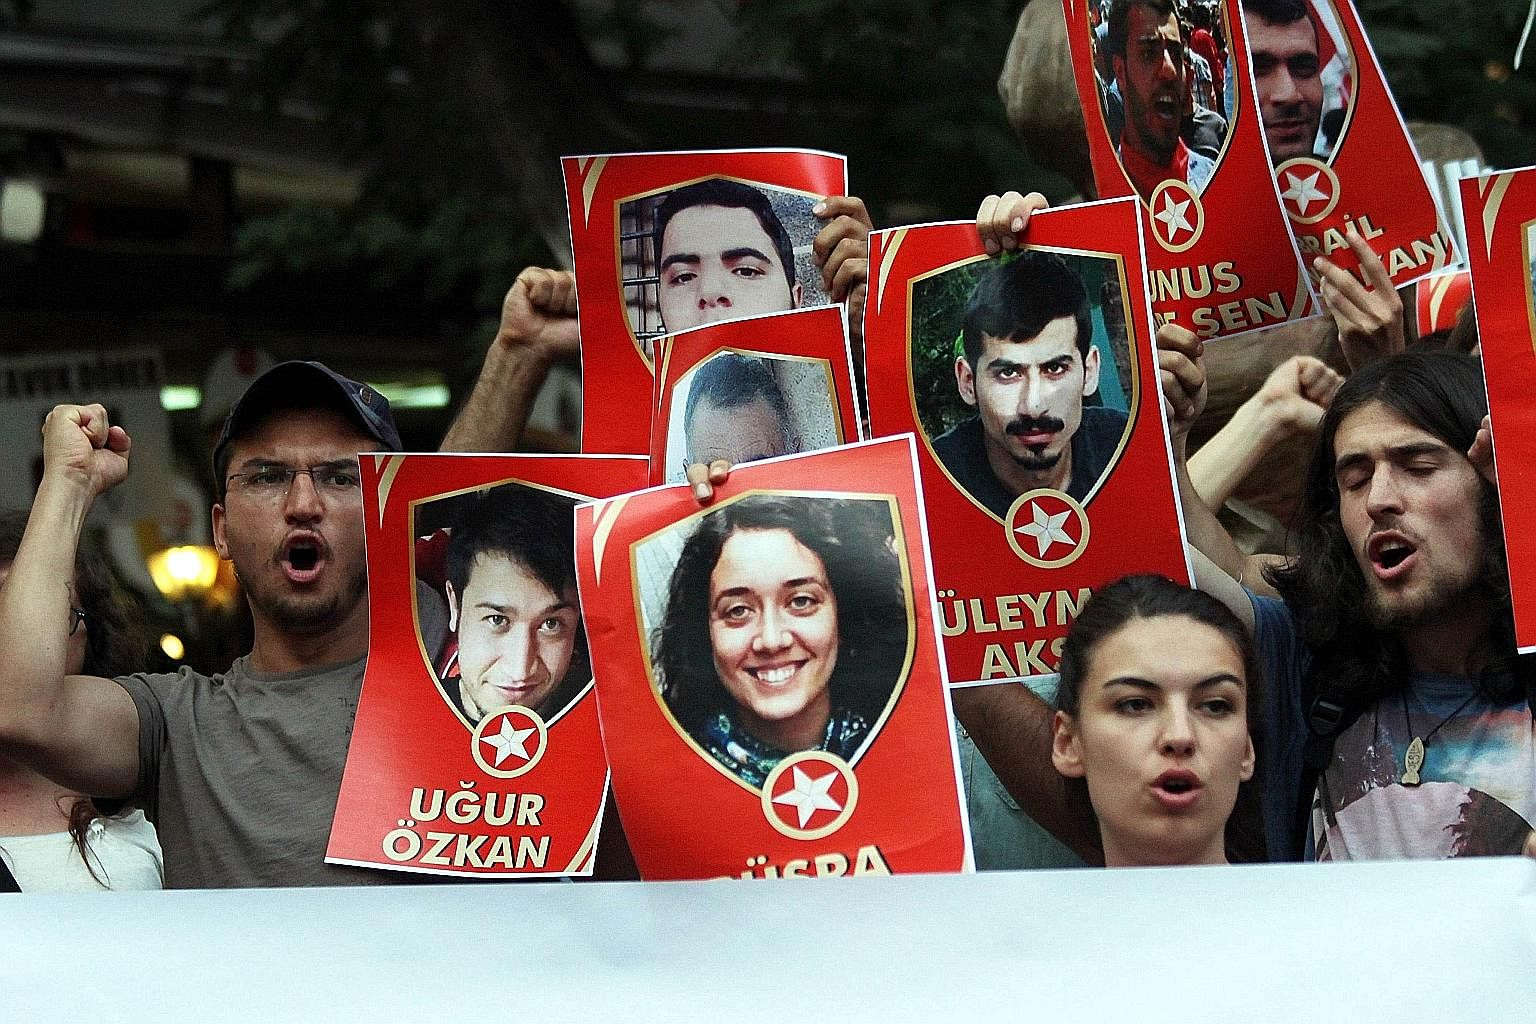 Demonstrators in Ankara displaying pictures of terror victims on Monday as they chanted slogans denouncing a suicide bombing in the Turkish border town of Suruc on July 20 that killed 32 people.